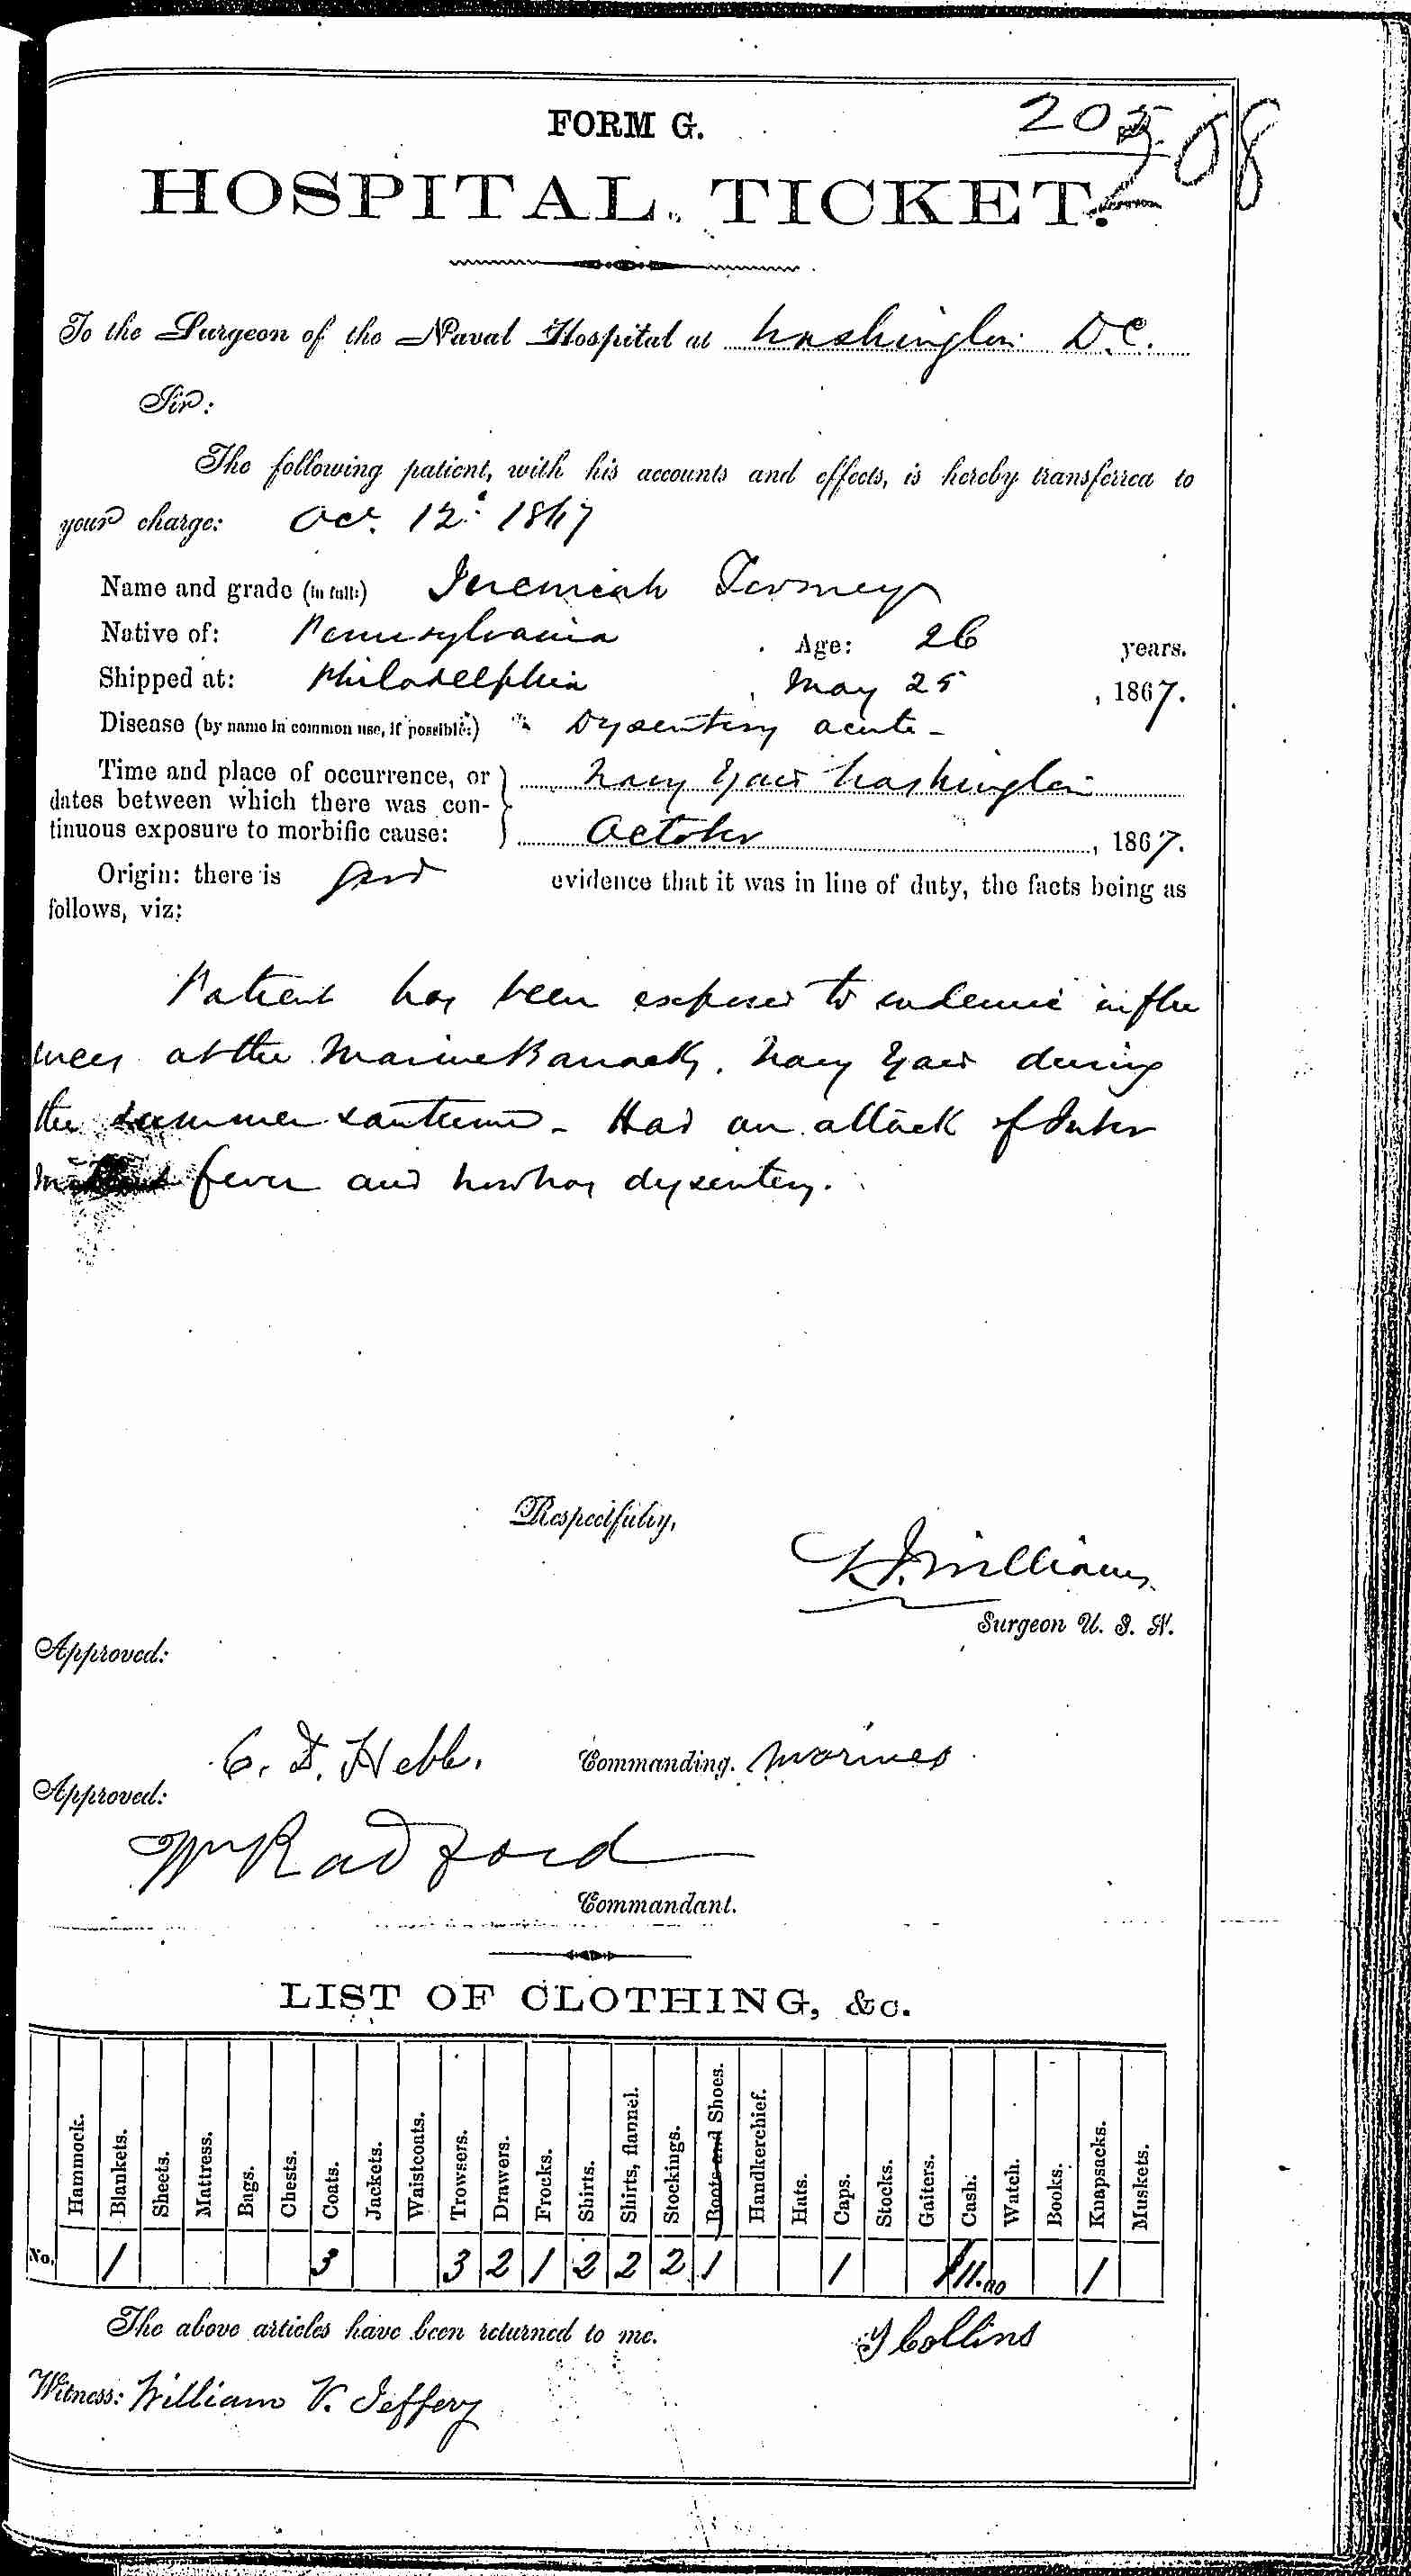 Entry for Jeremiah Tomey (page 1 of 2) in the log Hospital Tickets and Case Papers - Naval Hospital - Washington, D.C. - 1866-68